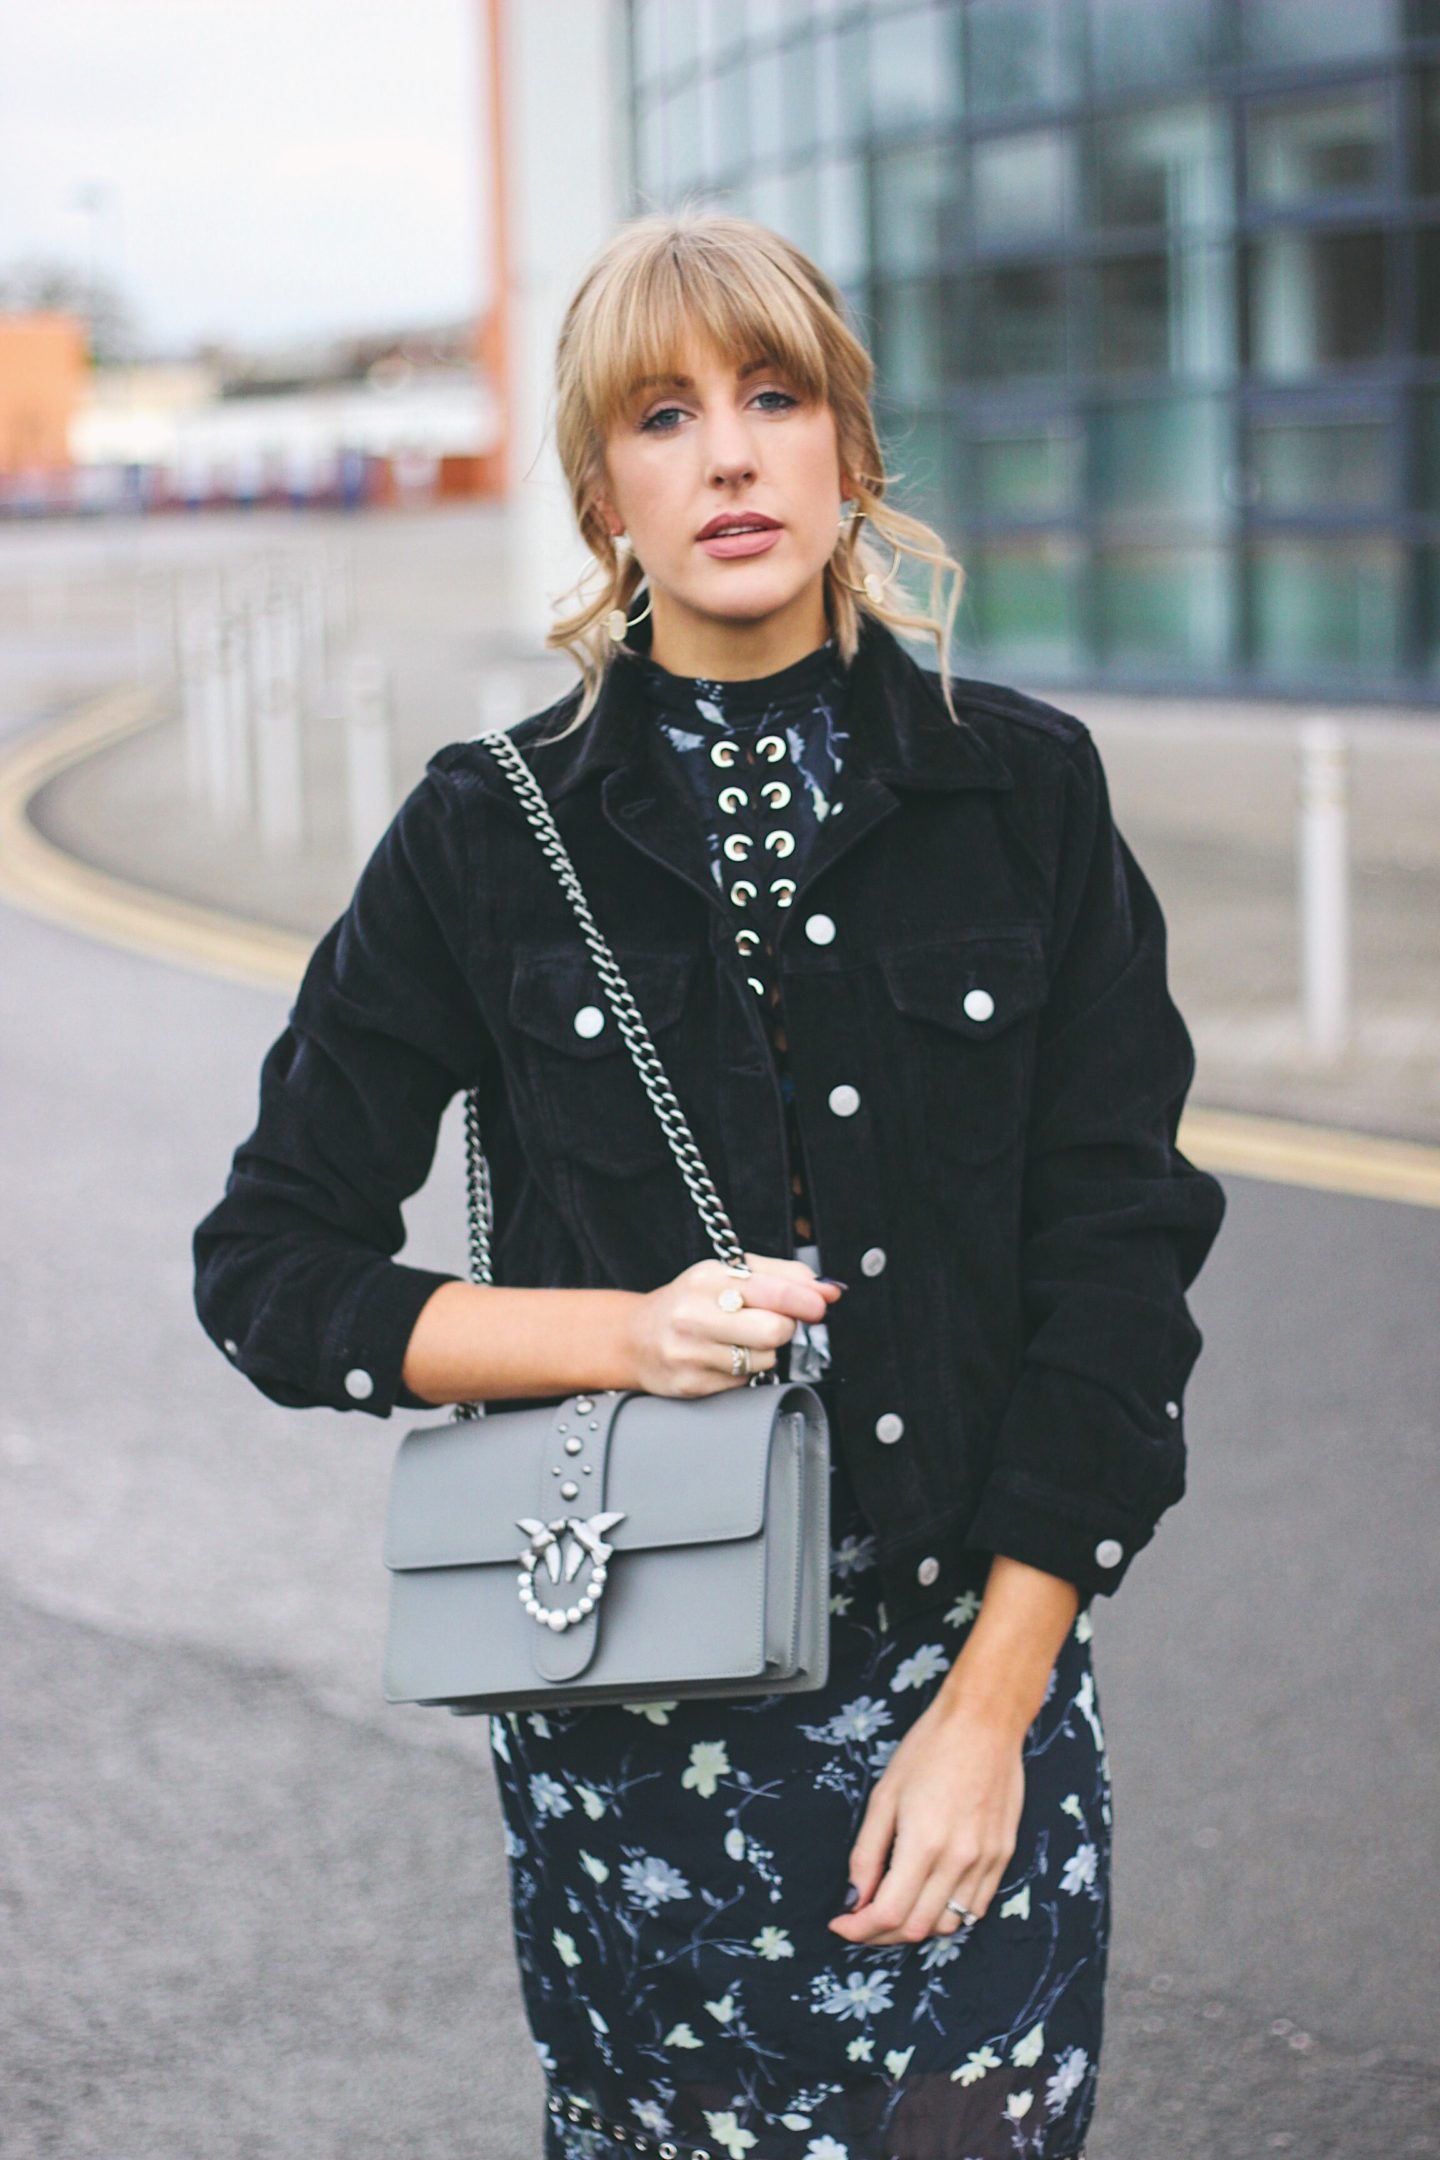 fashion blogger styling Pinko love bag with cords corduroy jacket